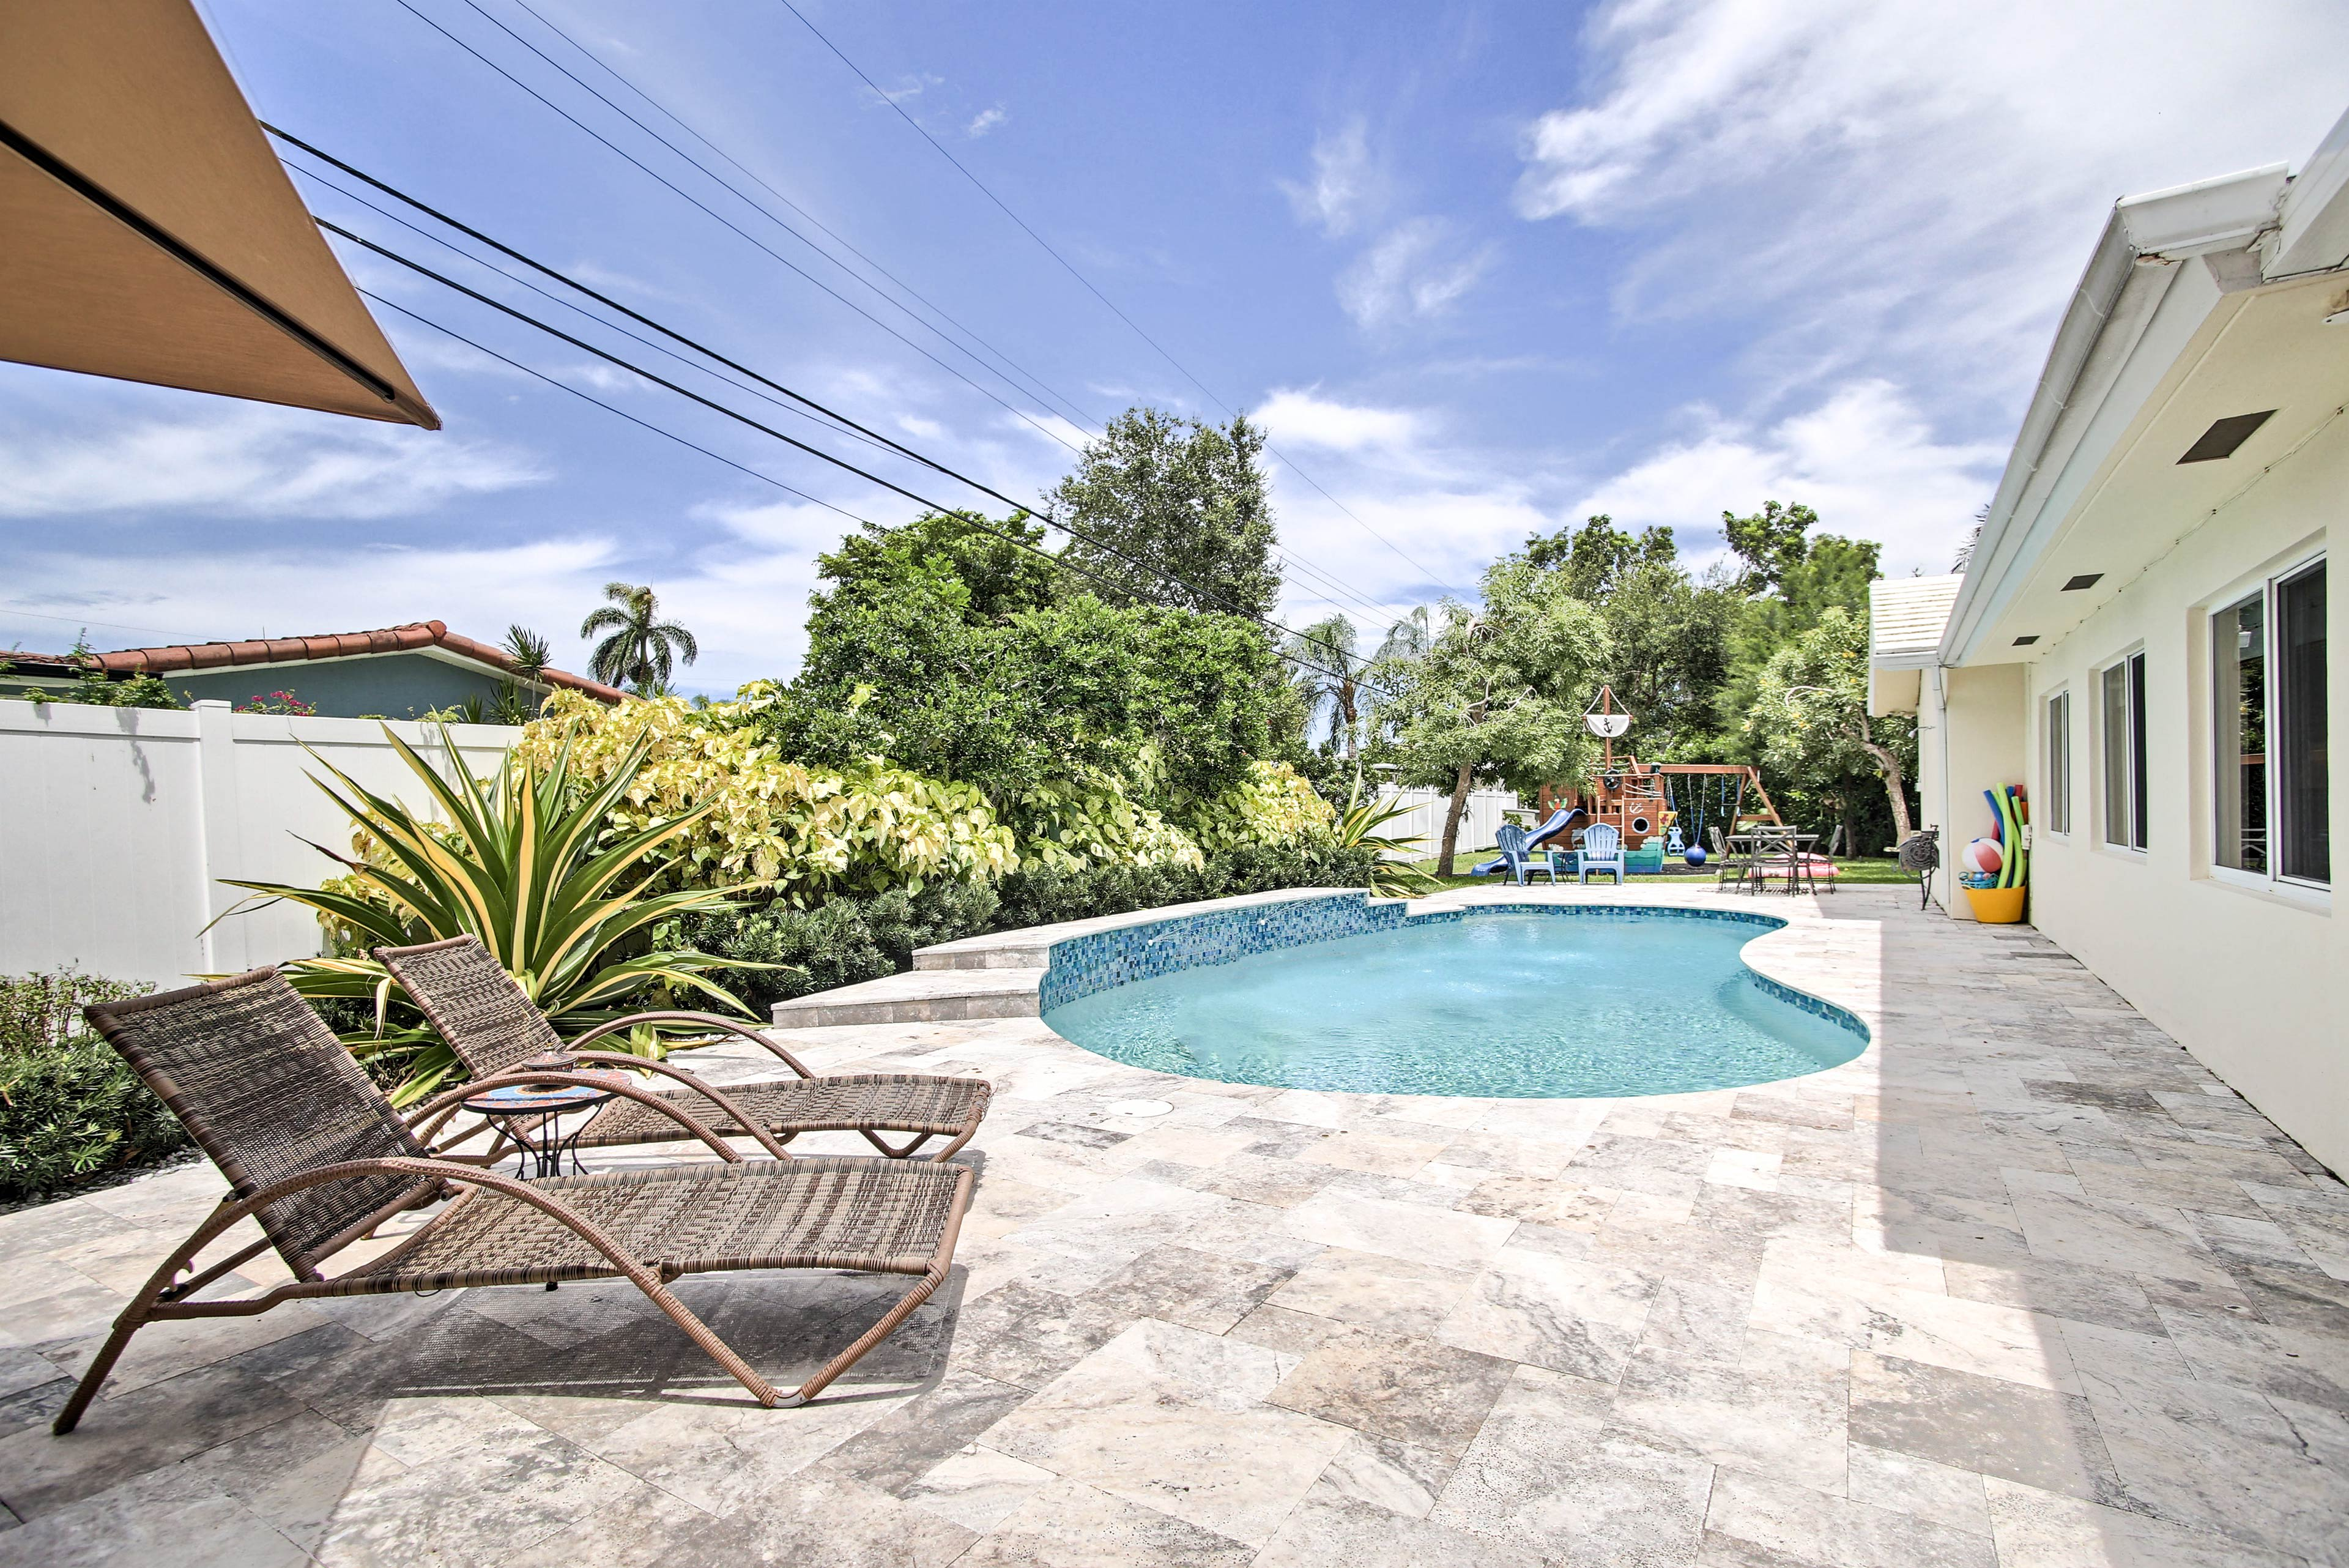 Dive into this stunning heated saltwater pool!